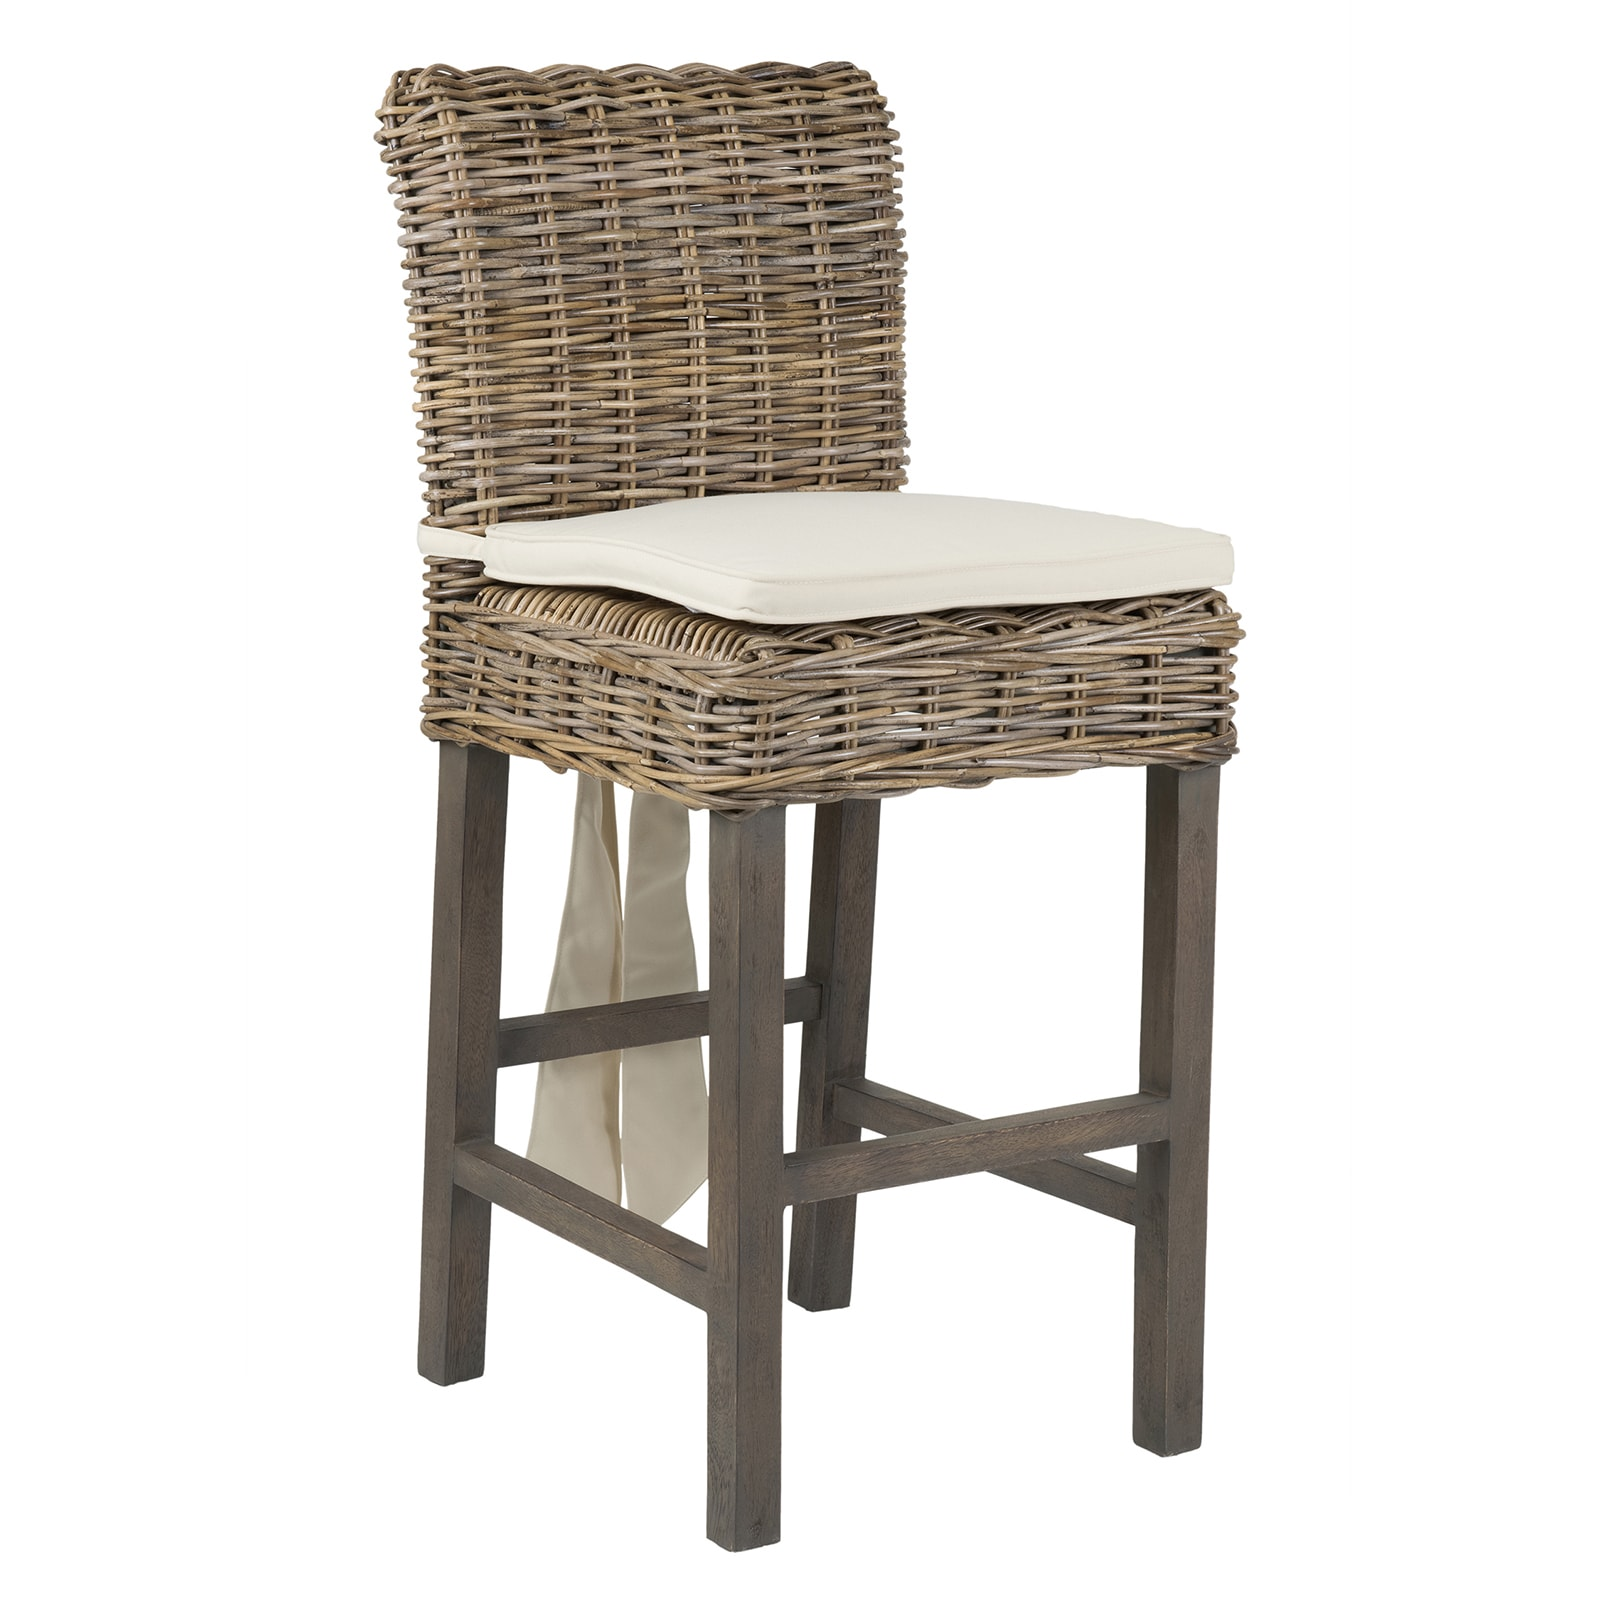 stools cabinet kitchen bar white counter island rattan and swivel enchanting in stool decor home woven with for wicker